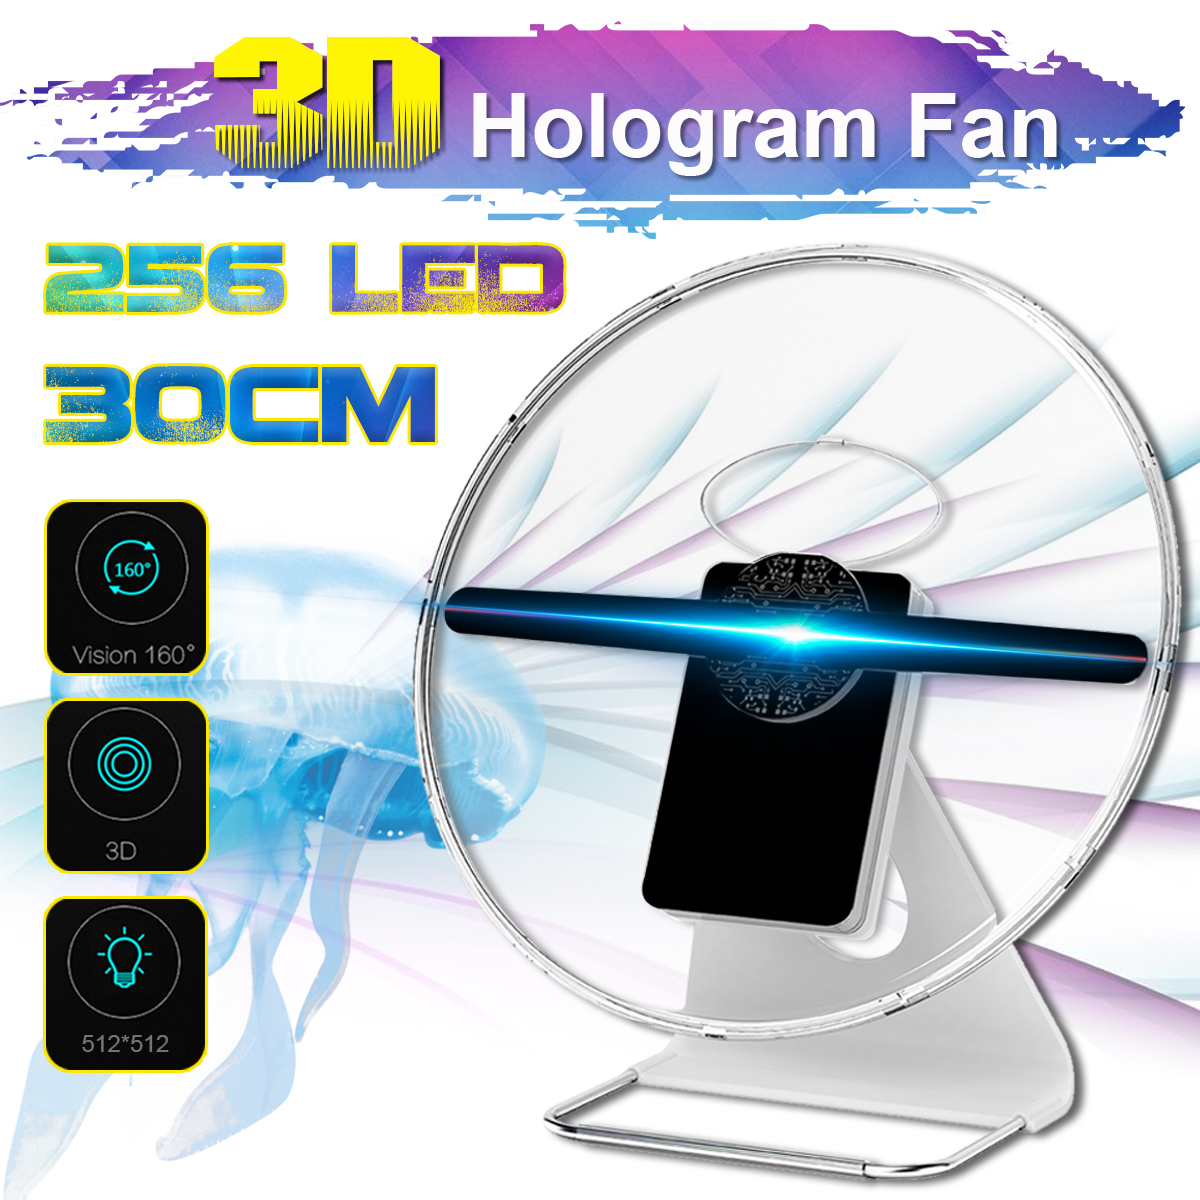 Portable 30CM 3D Holographic Projector With Battery Hologram Player LED Display Fan Advertising Light Remote ControlPortable 30CM 3D Holographic Projector With Battery Hologram Player LED Display Fan Advertising Light Remote Control